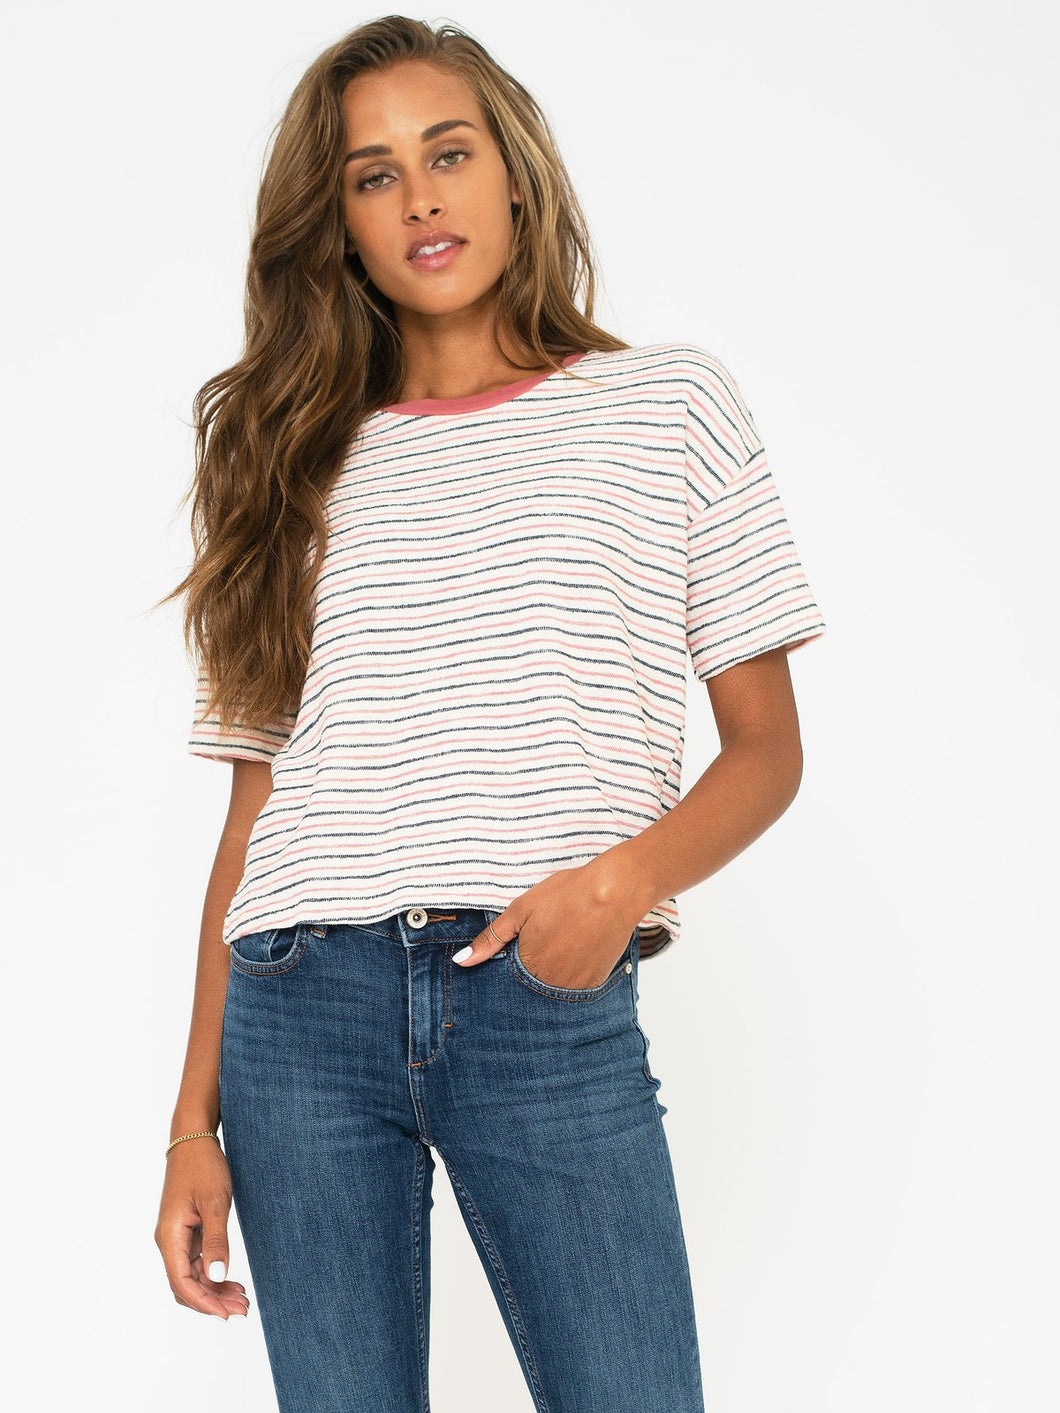 Monterey Stripe Boxy Crew - civvies - indianapolis clothing boutique